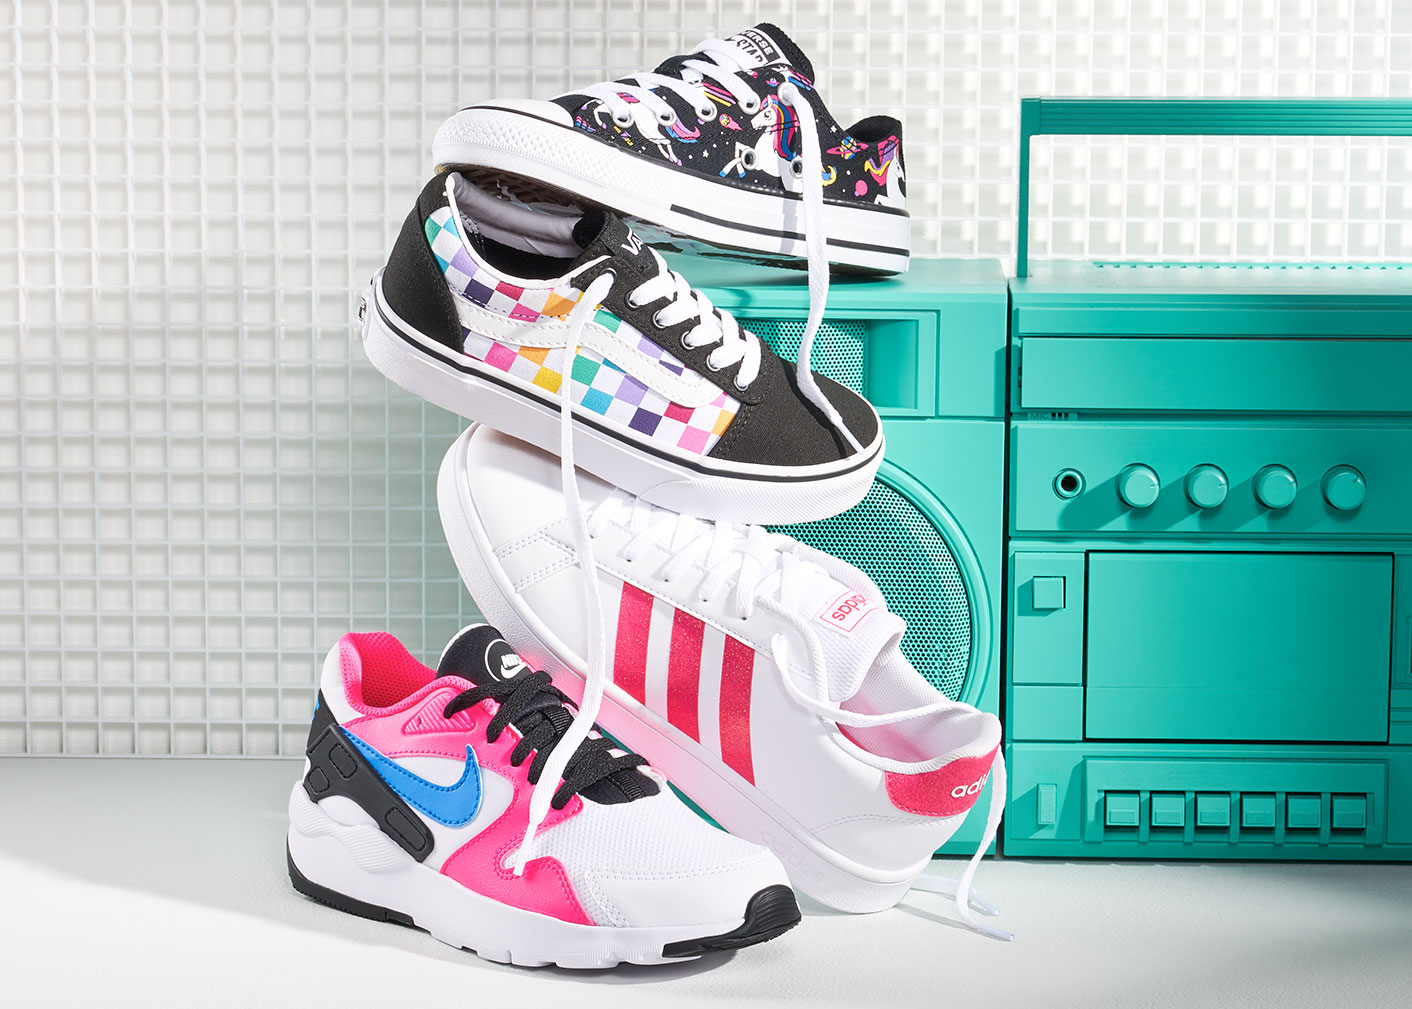 assorted converse, vans, adidas and nike colorful sneakers